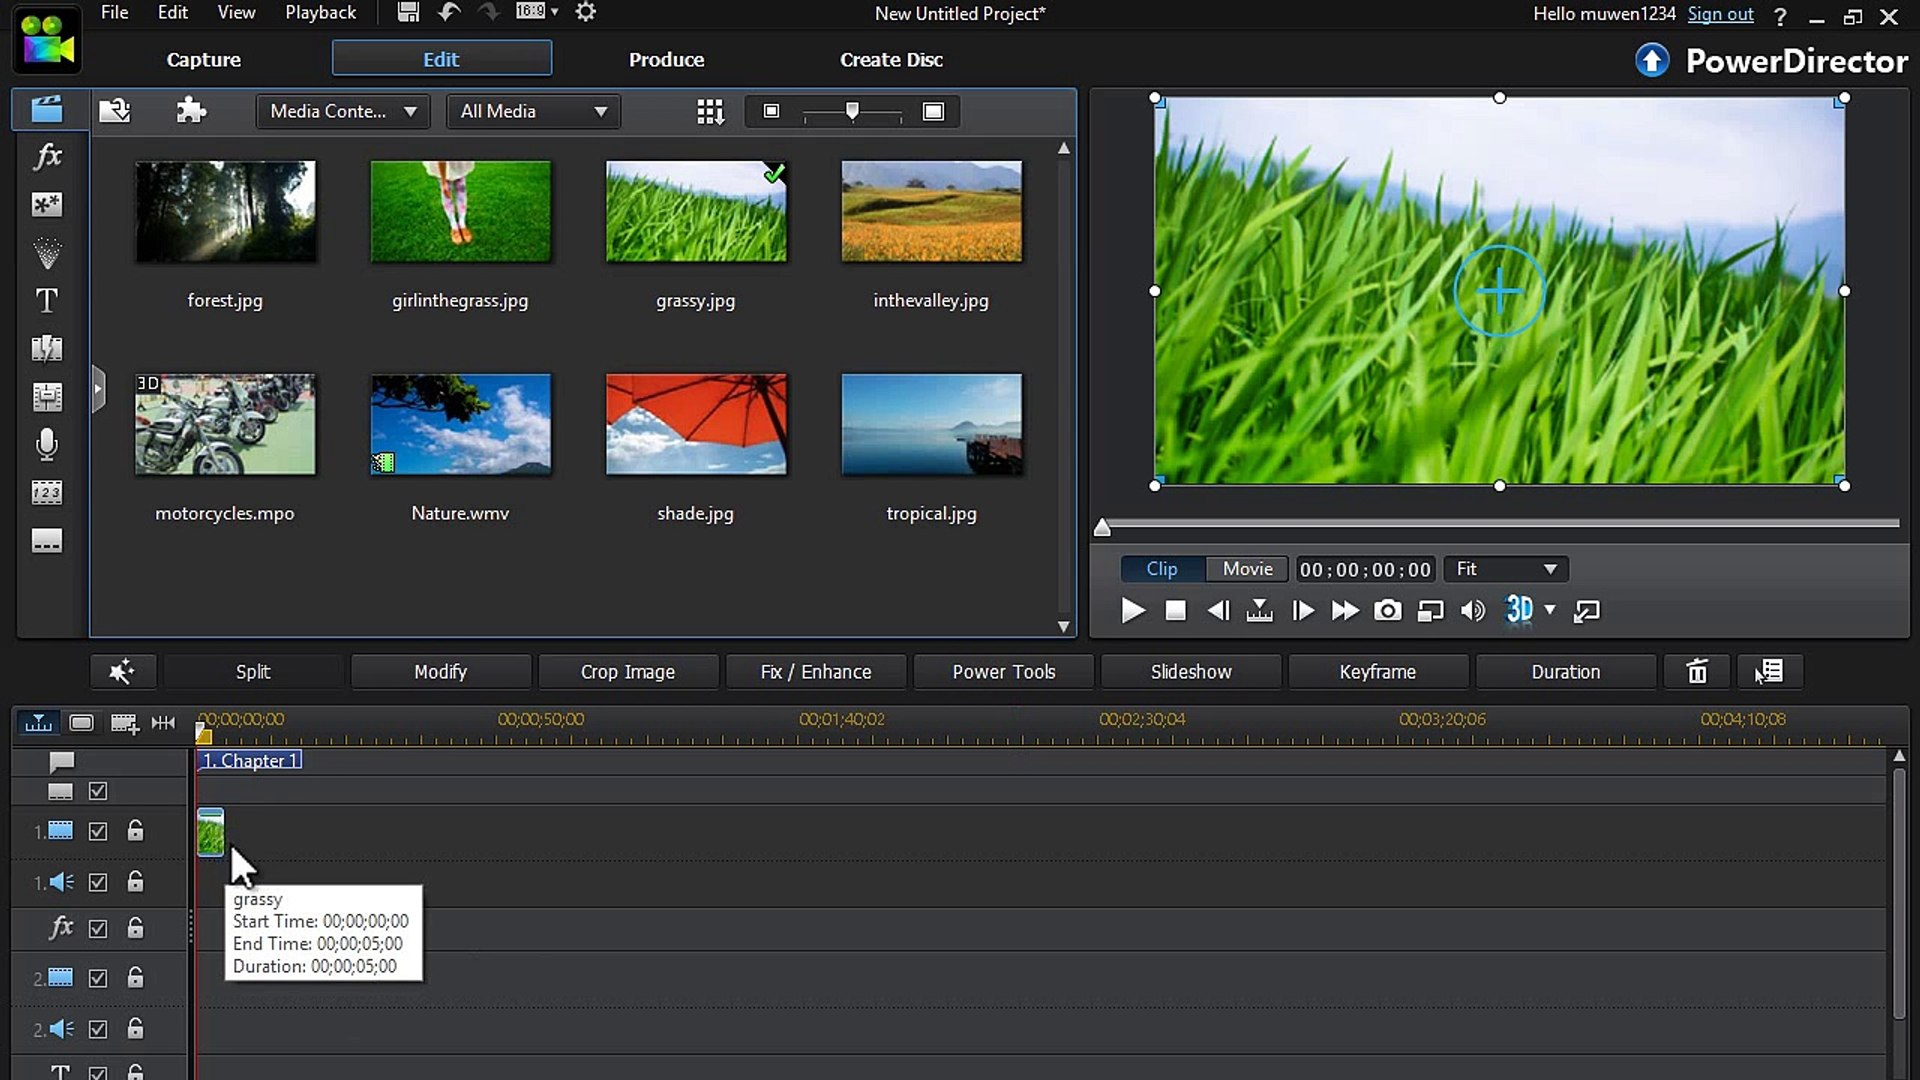 How To Add Motion to a Still Image in PowerDirector 12 (Magic Motion Tool)